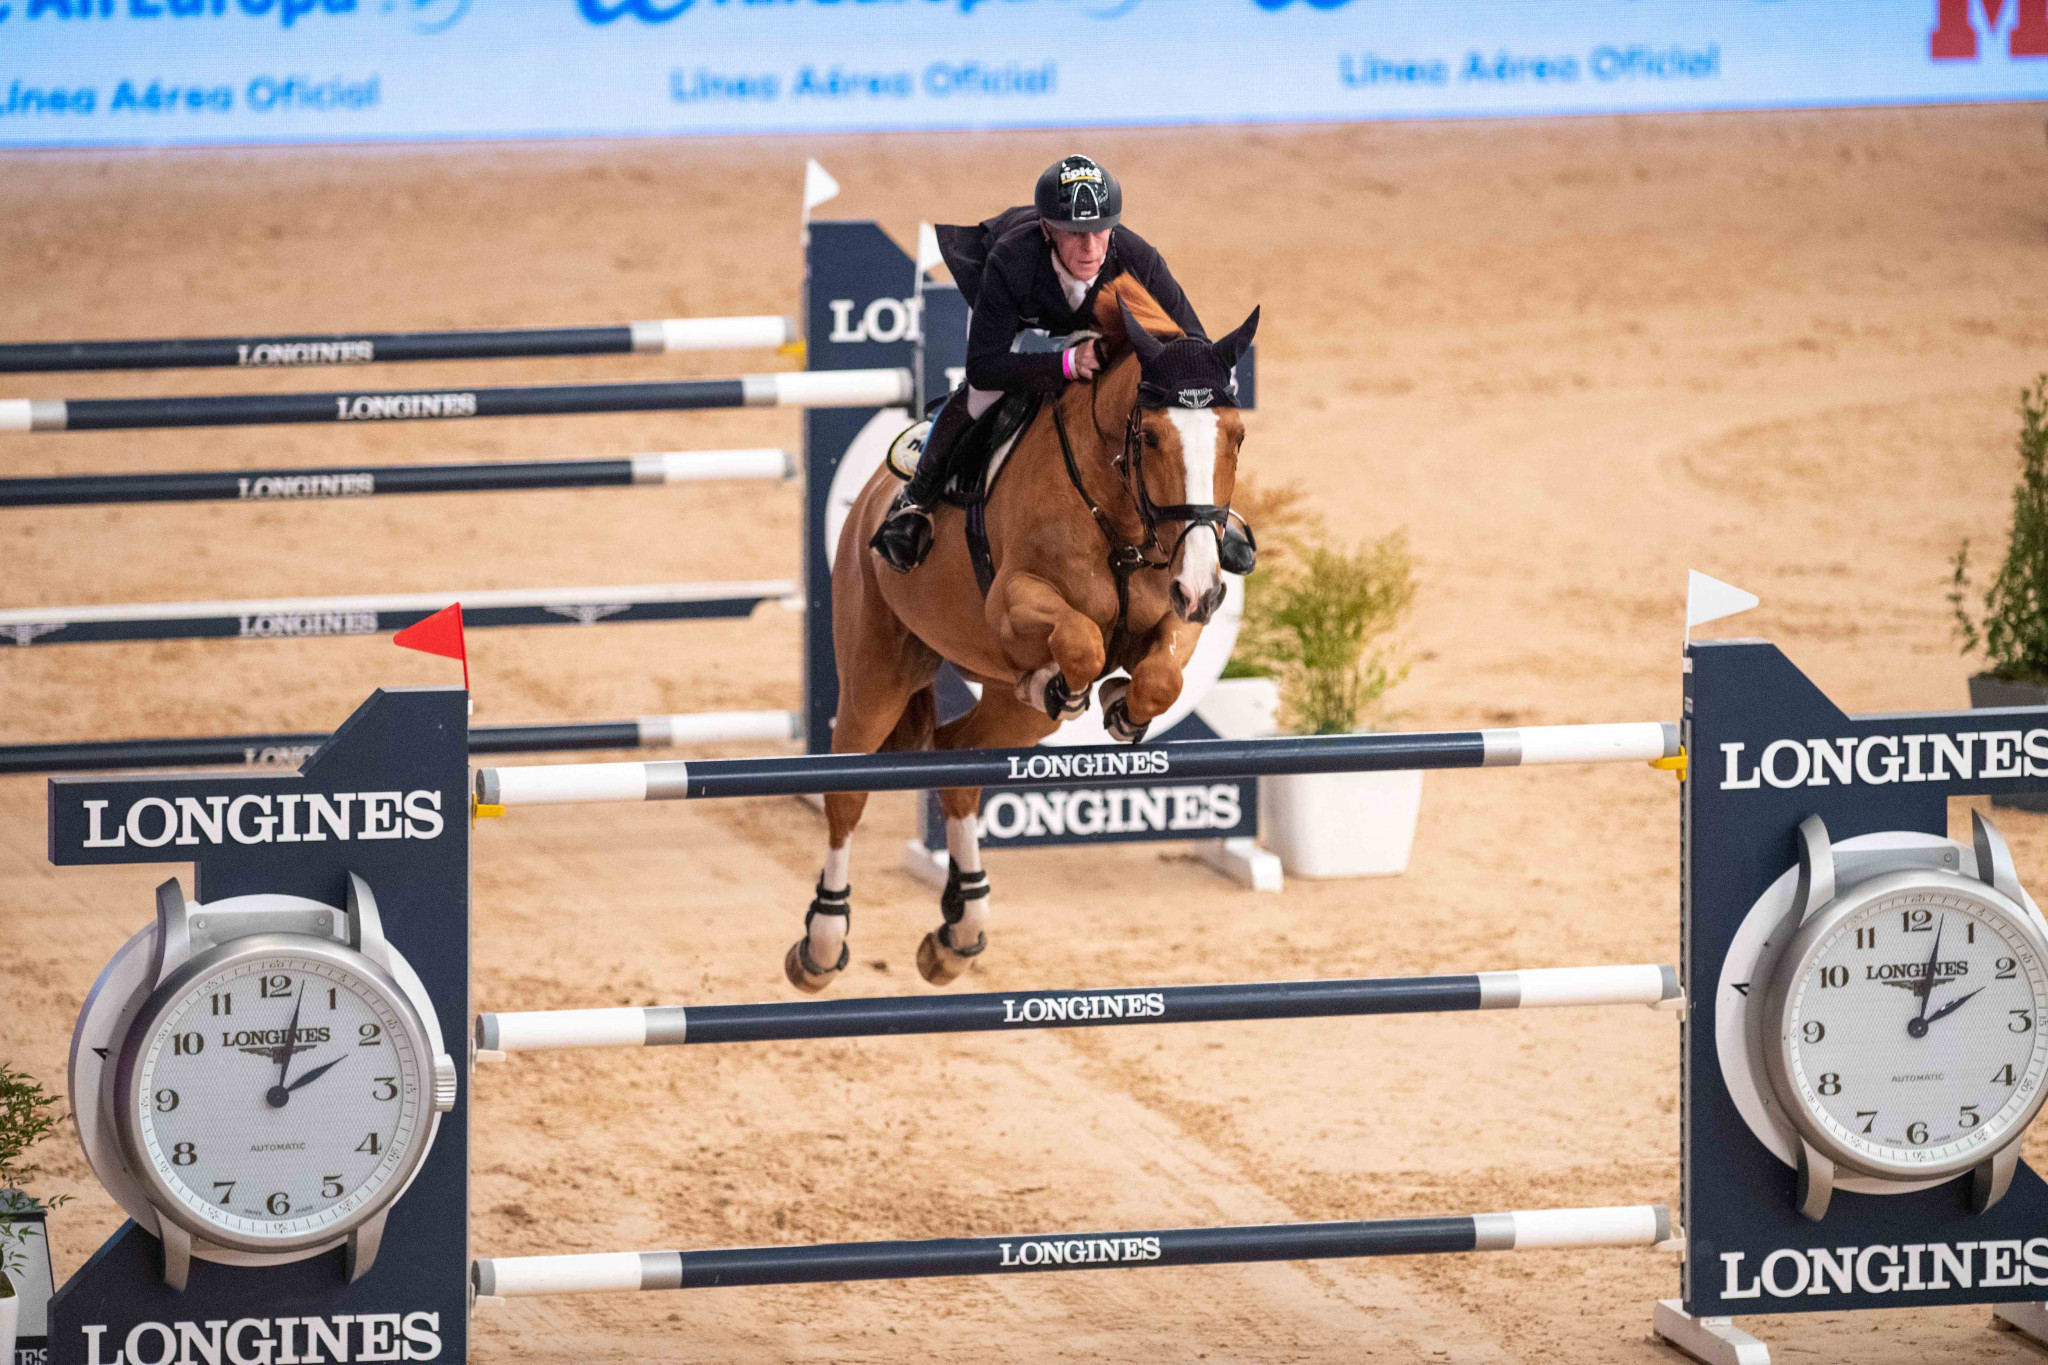 Germany's Marcus Ehning flew to victory with Pret a Tout in today's FEI Jumping World Cup Western European League qualifier in Madrid ©FEI/Thomas Reiner